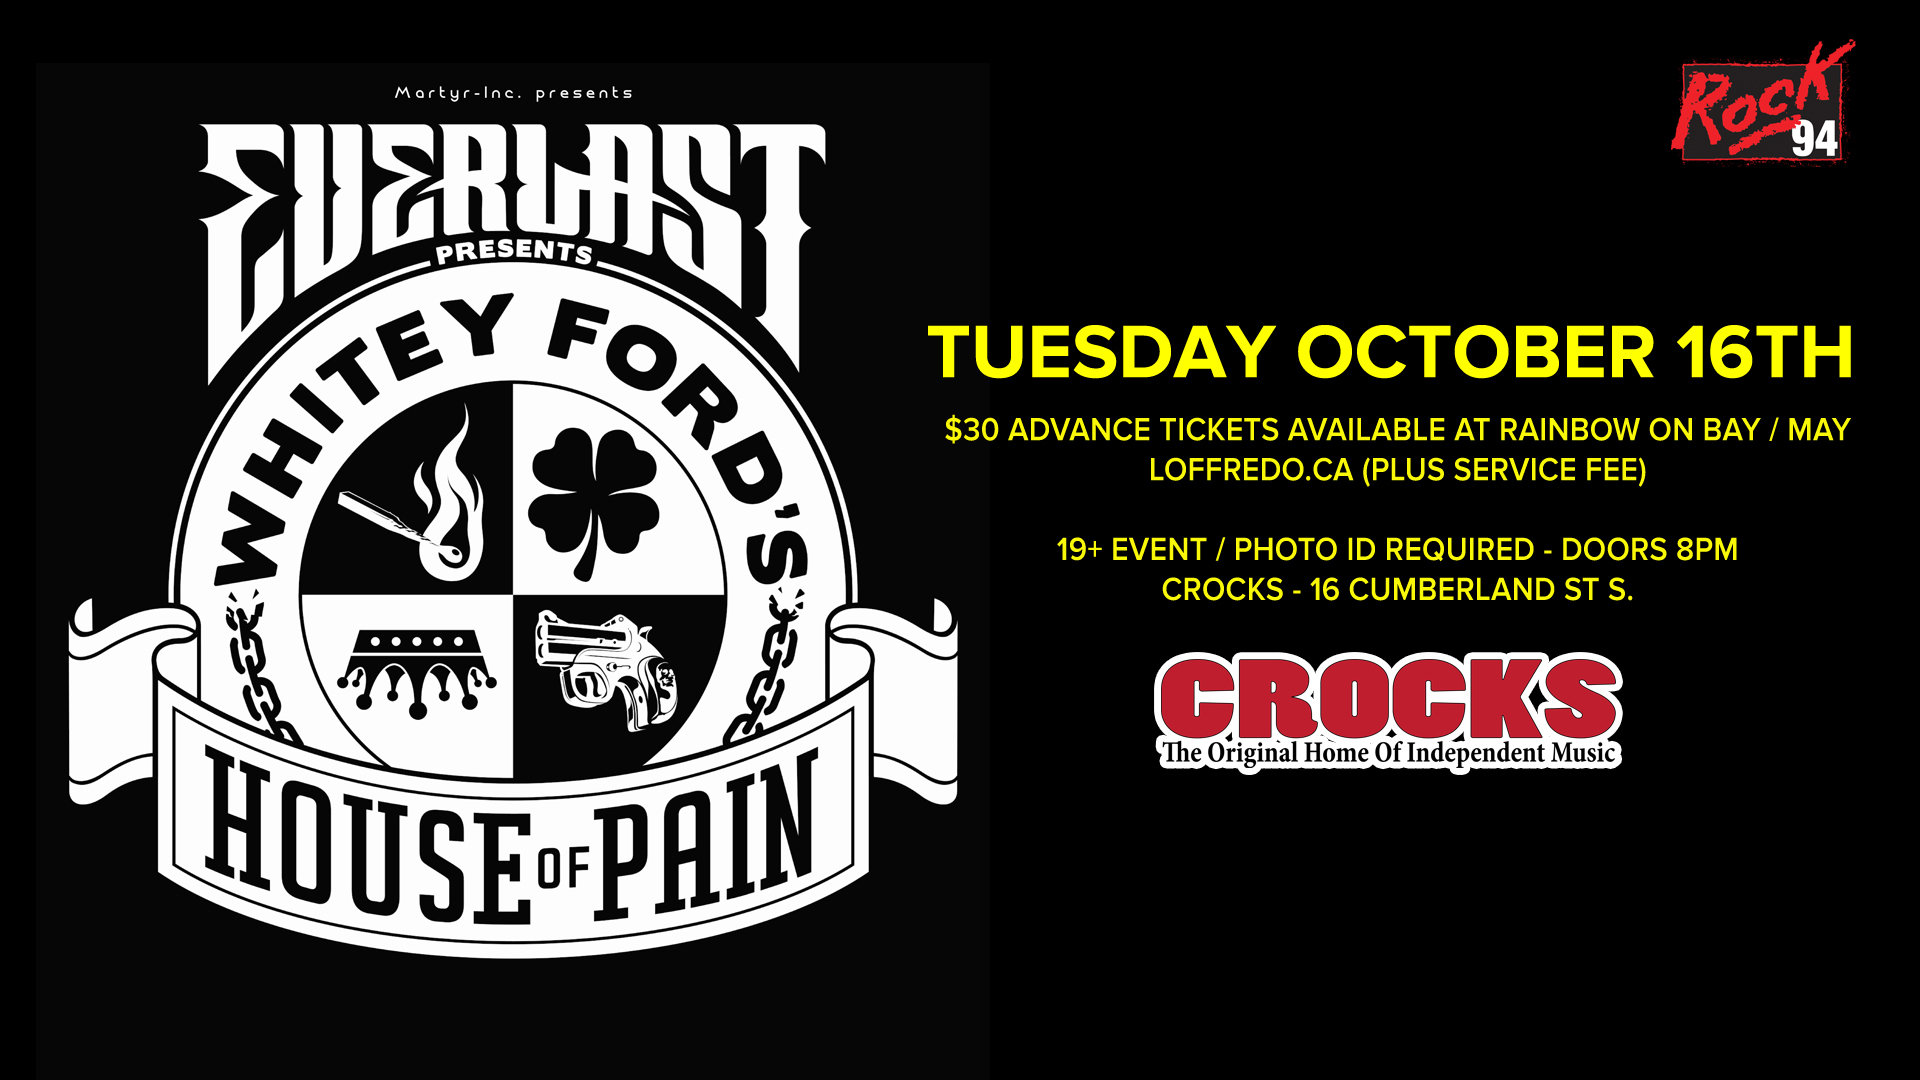 Everlast - Whitey Ford's House Of Pain Tour - Tuesday October 16th 00277